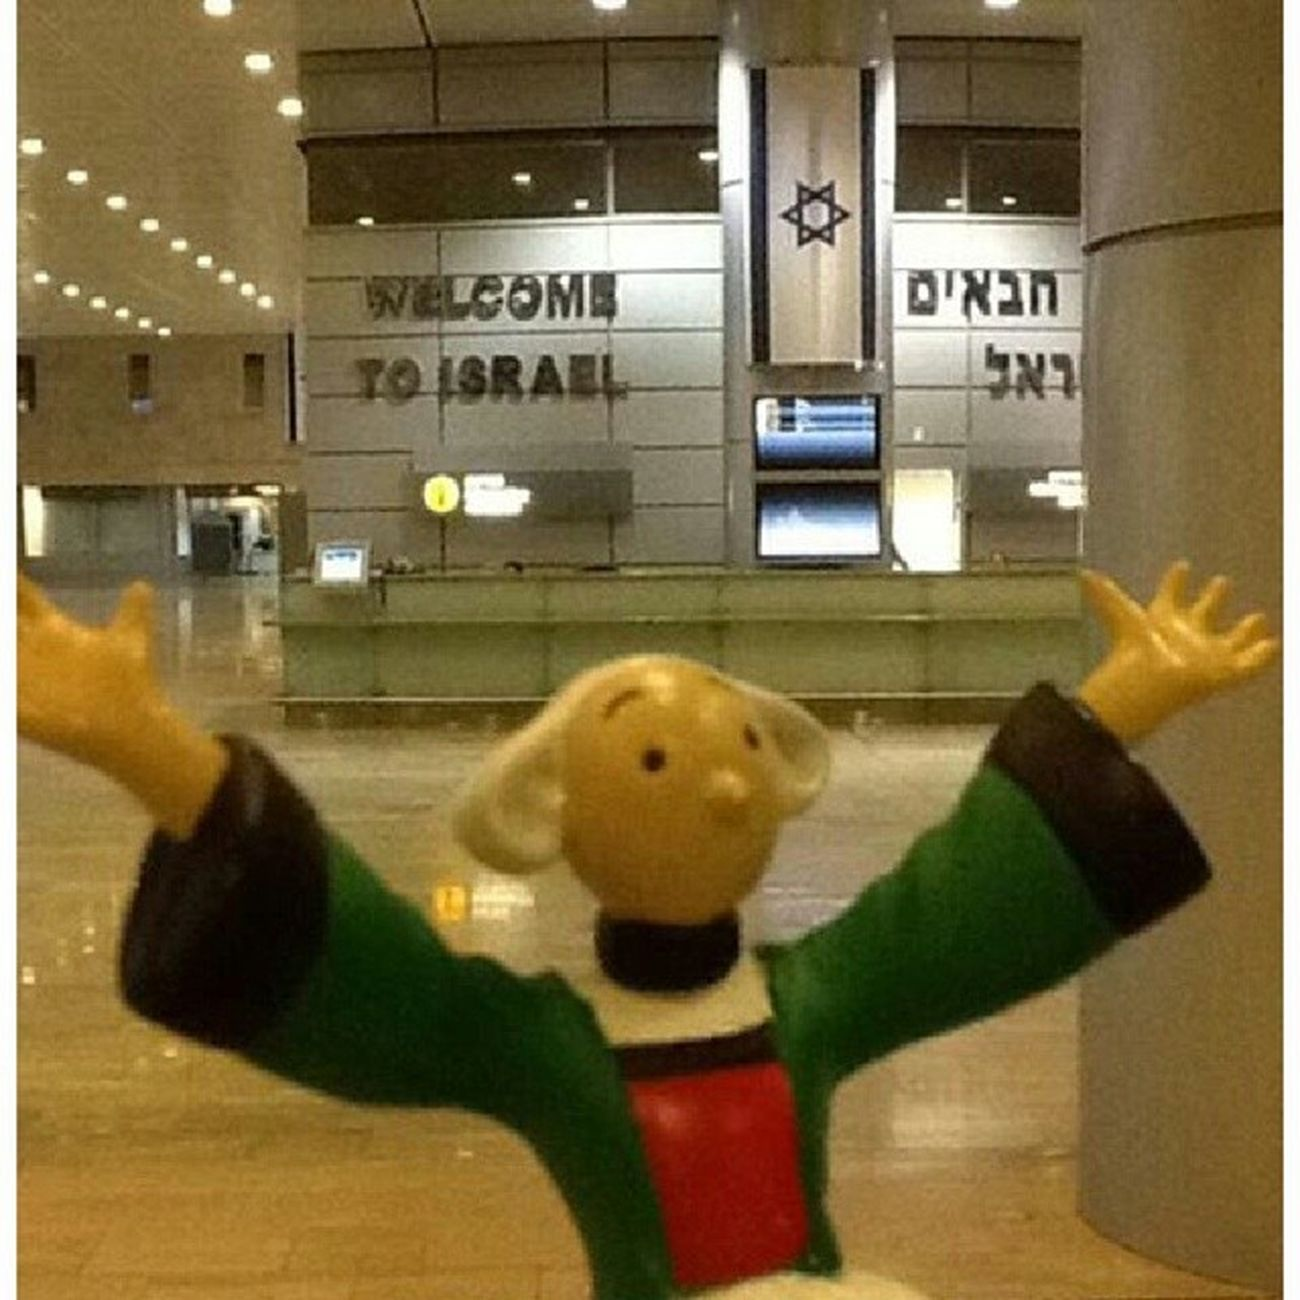 at Bengurionairport in Tlv Israel